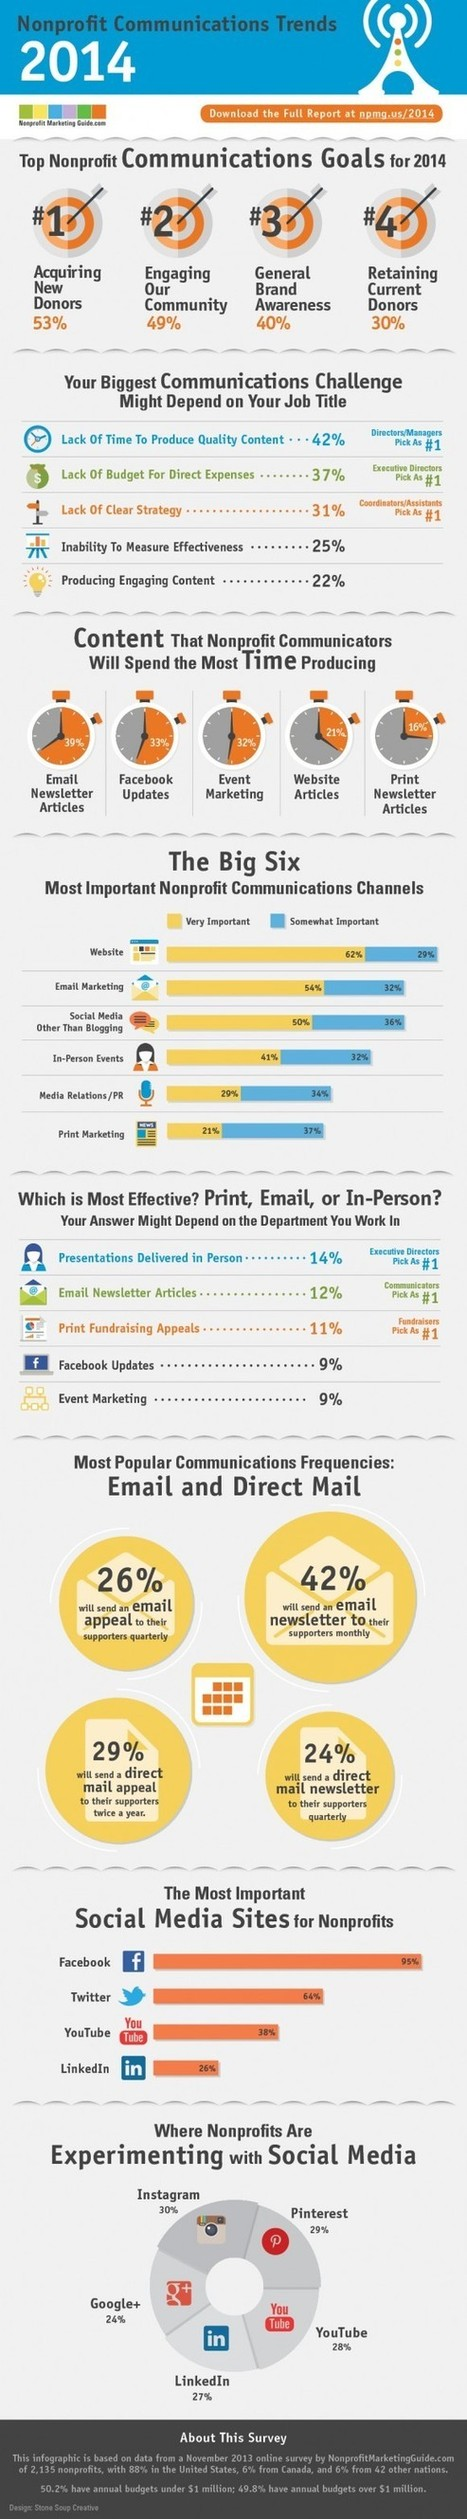 Non-Profit Communications Trends 2014 | Nonprofit Digital Engagement | Scoop.it